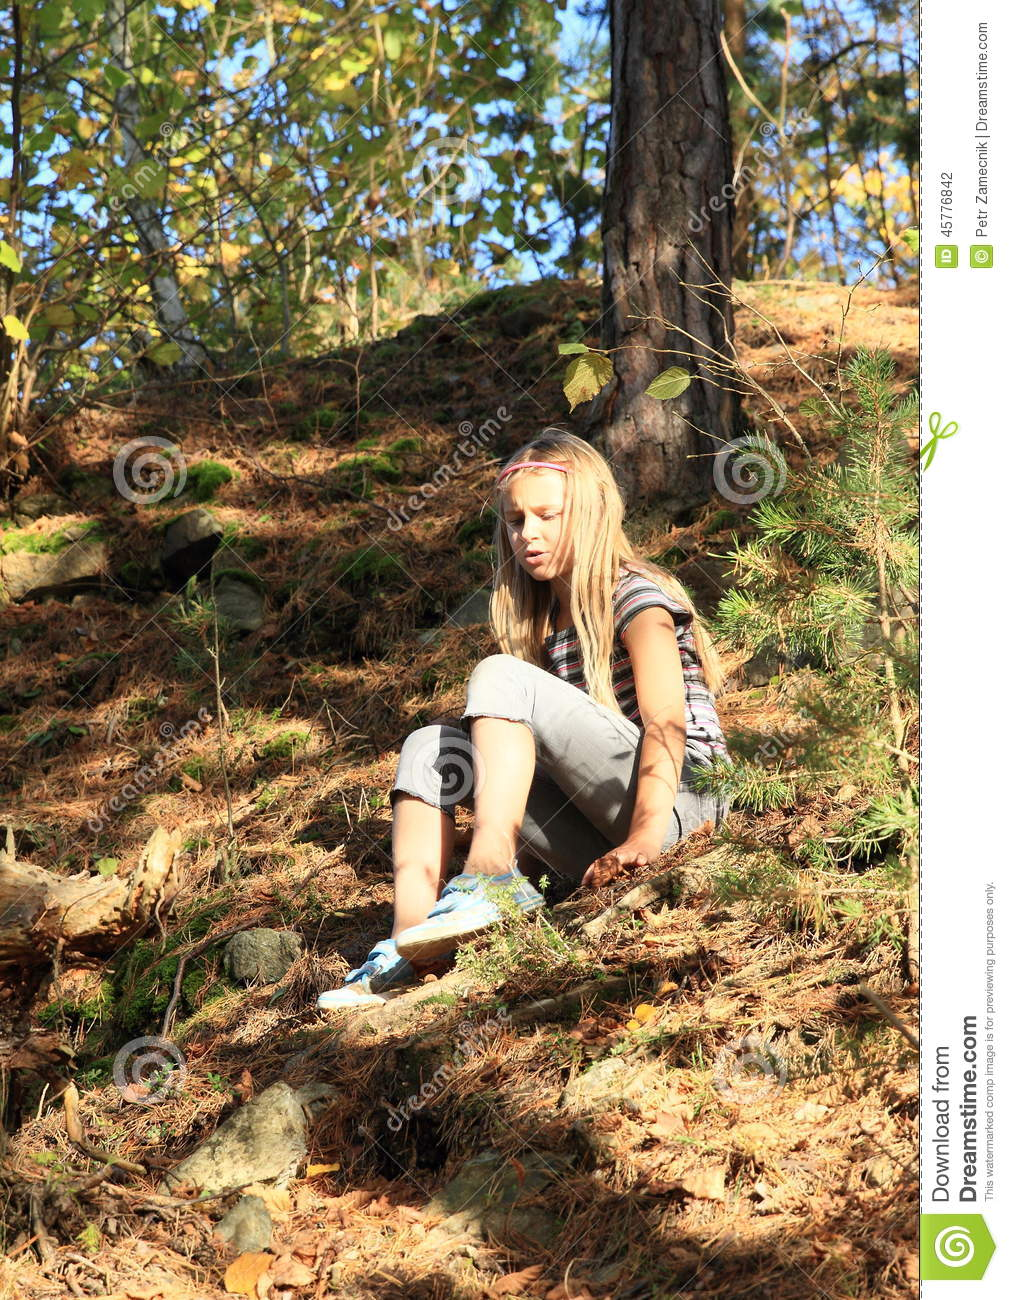 Girl going down in forest stock photo. Image of cutie - 45776842